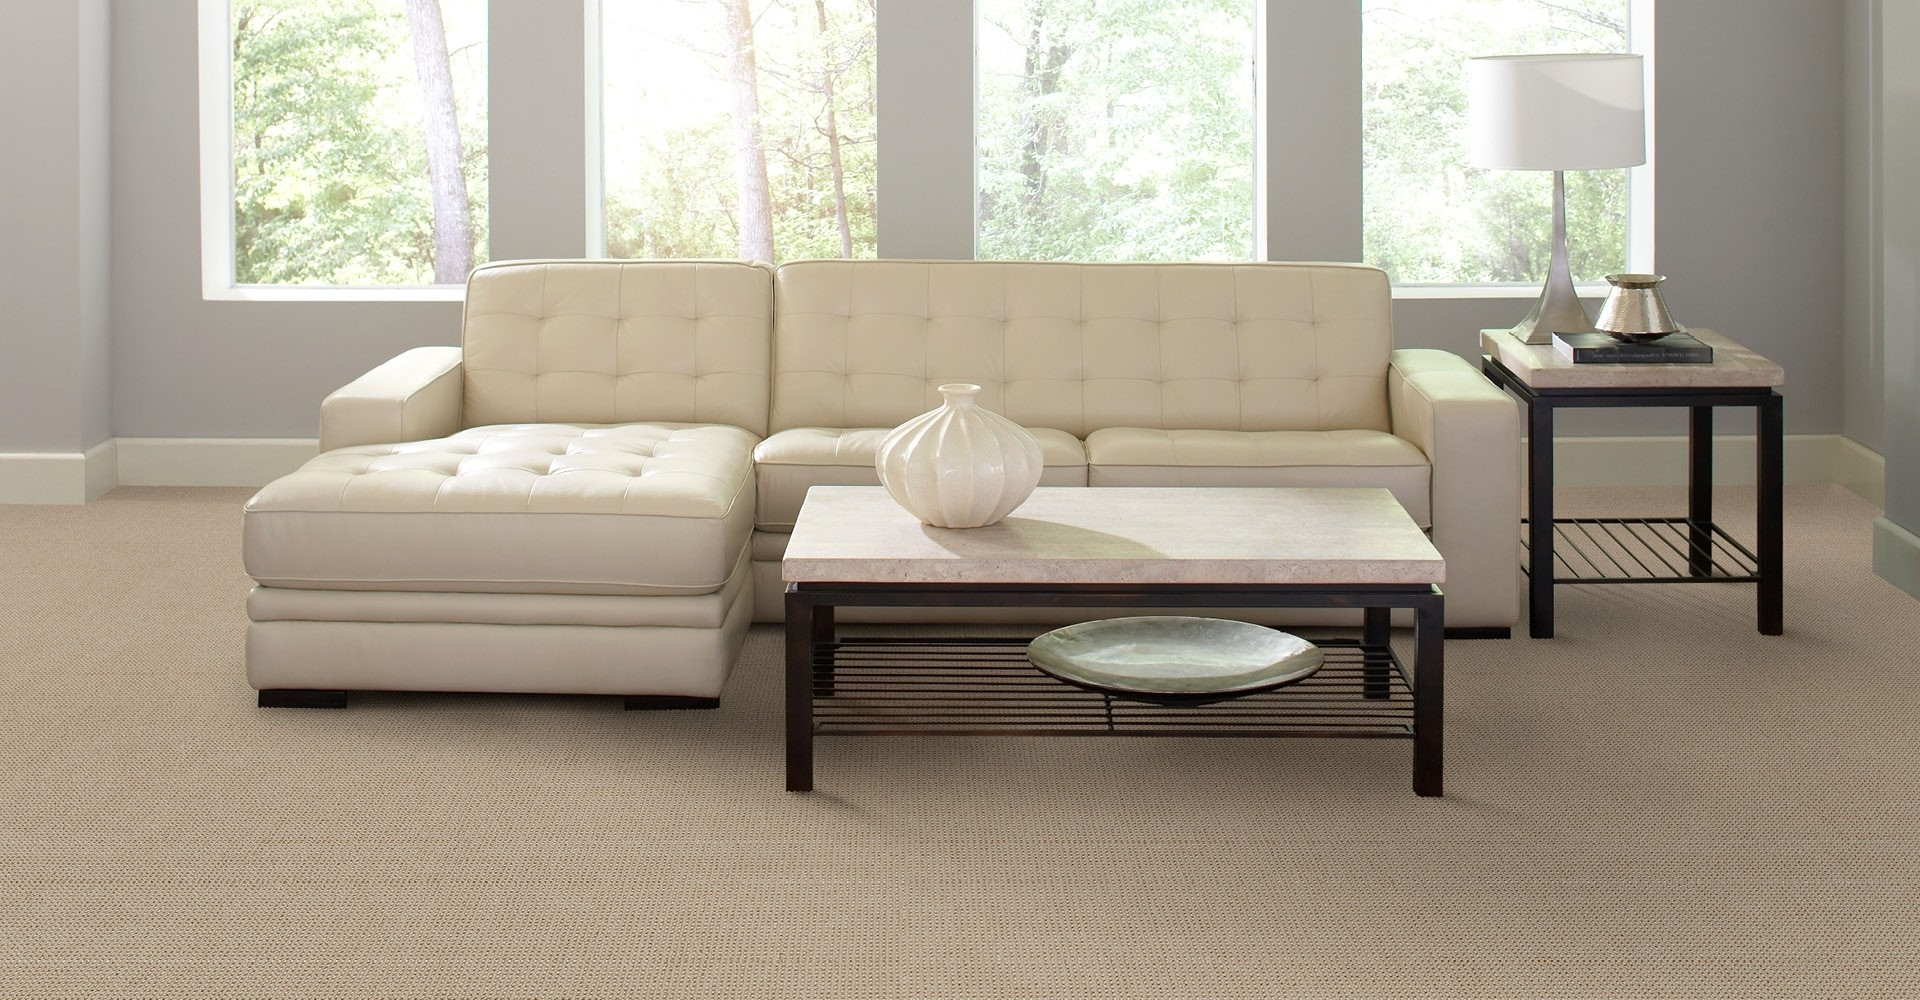 Tufted Sectional Sofas With Chaise Pertaining To 2019 Simple Living Room Decoration With All White Interior Color And (View 12 of 20)